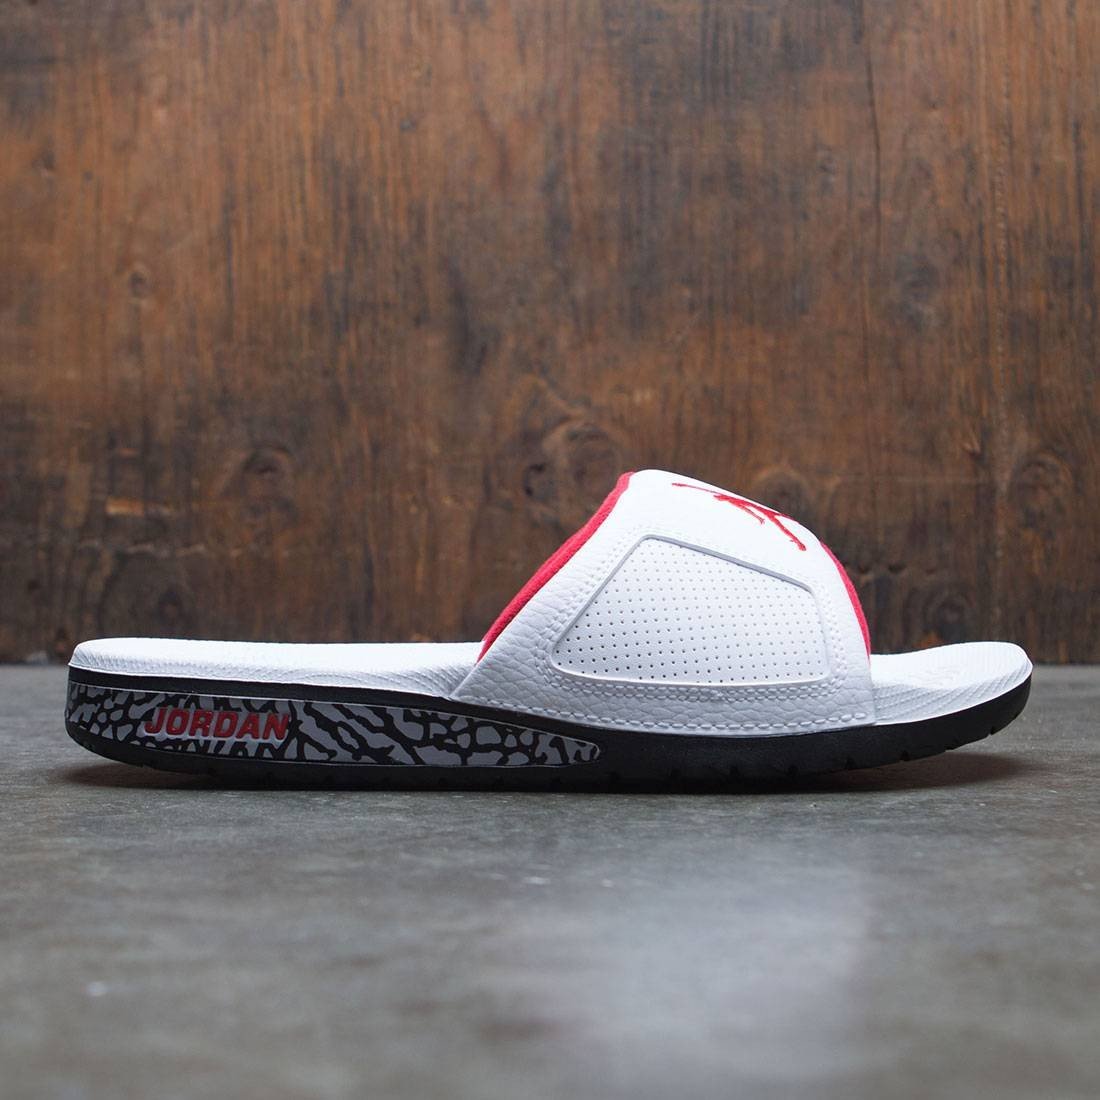 e2a8d390e jordan men jordan hydro iii retro slide white university red black cement  grey